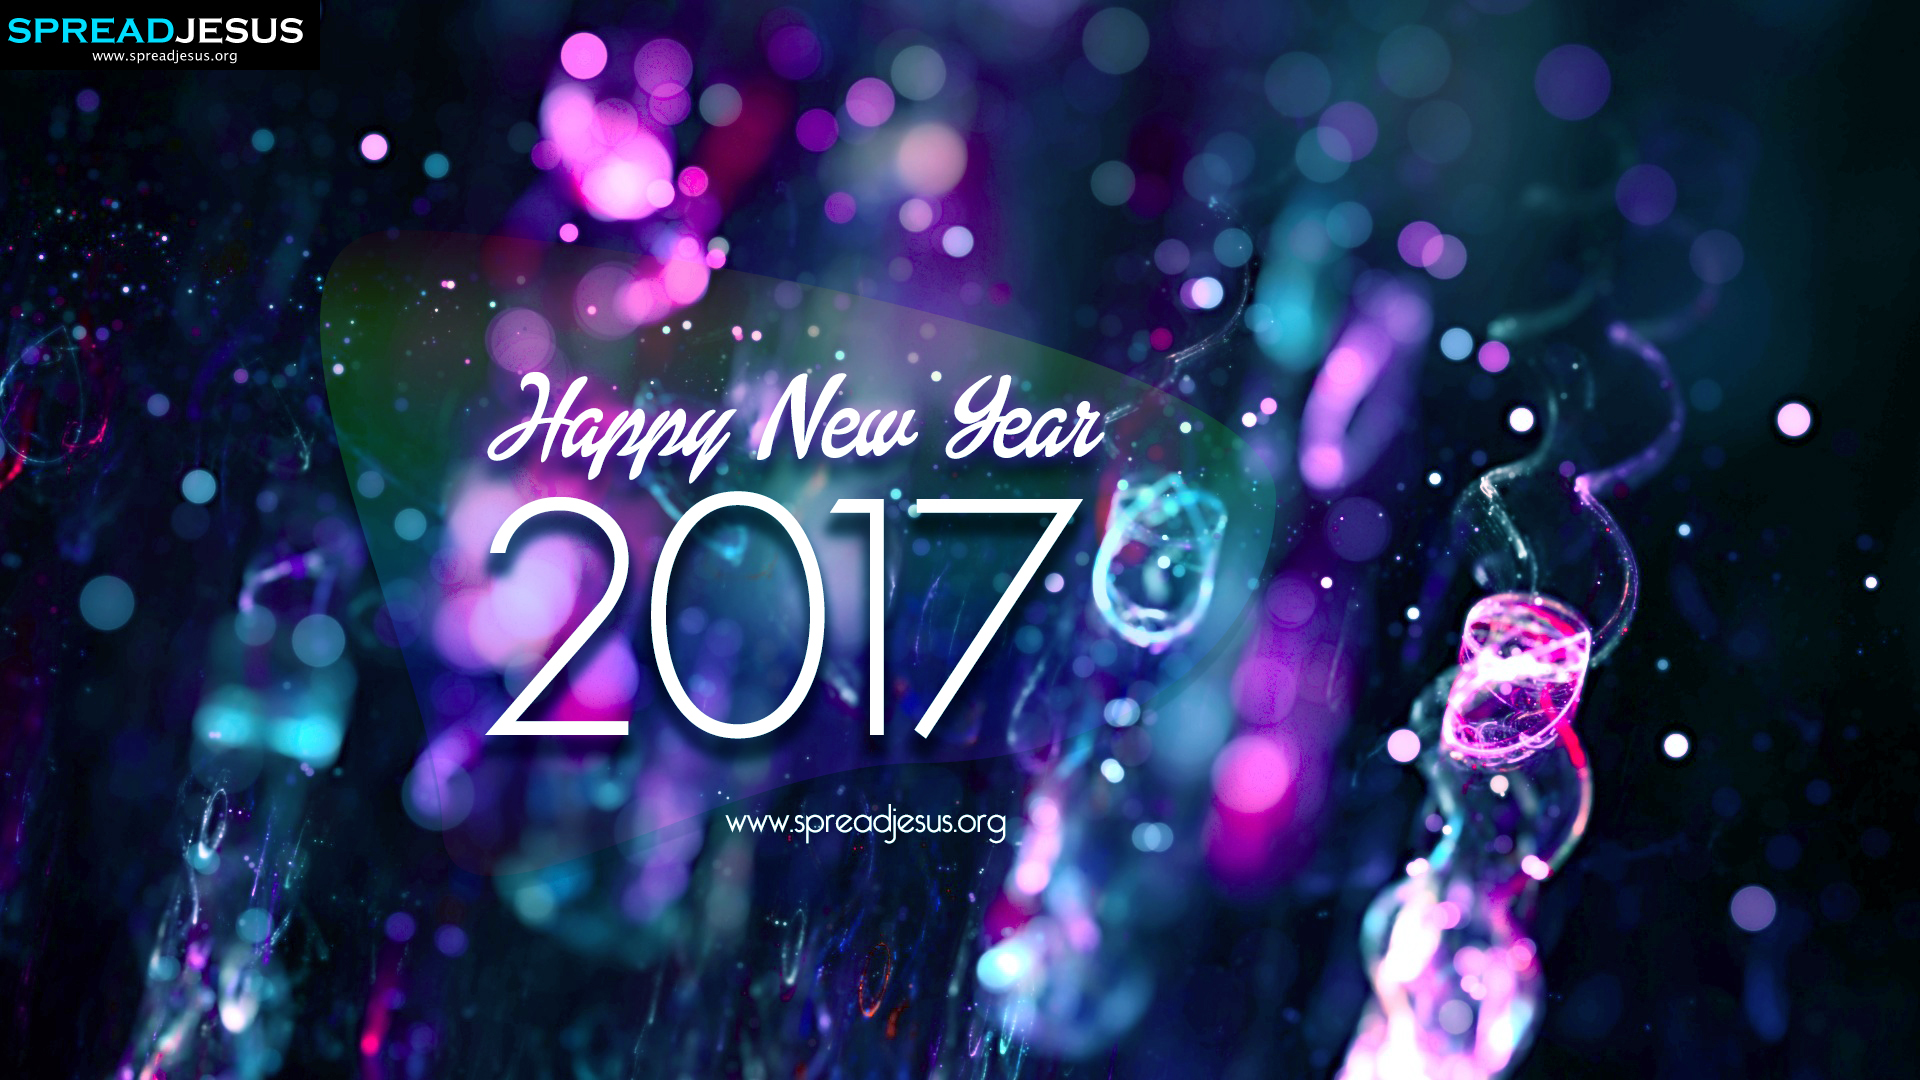 happy new year 2017 greetings wishes hd wallpapers free downloading spreadjesusorg